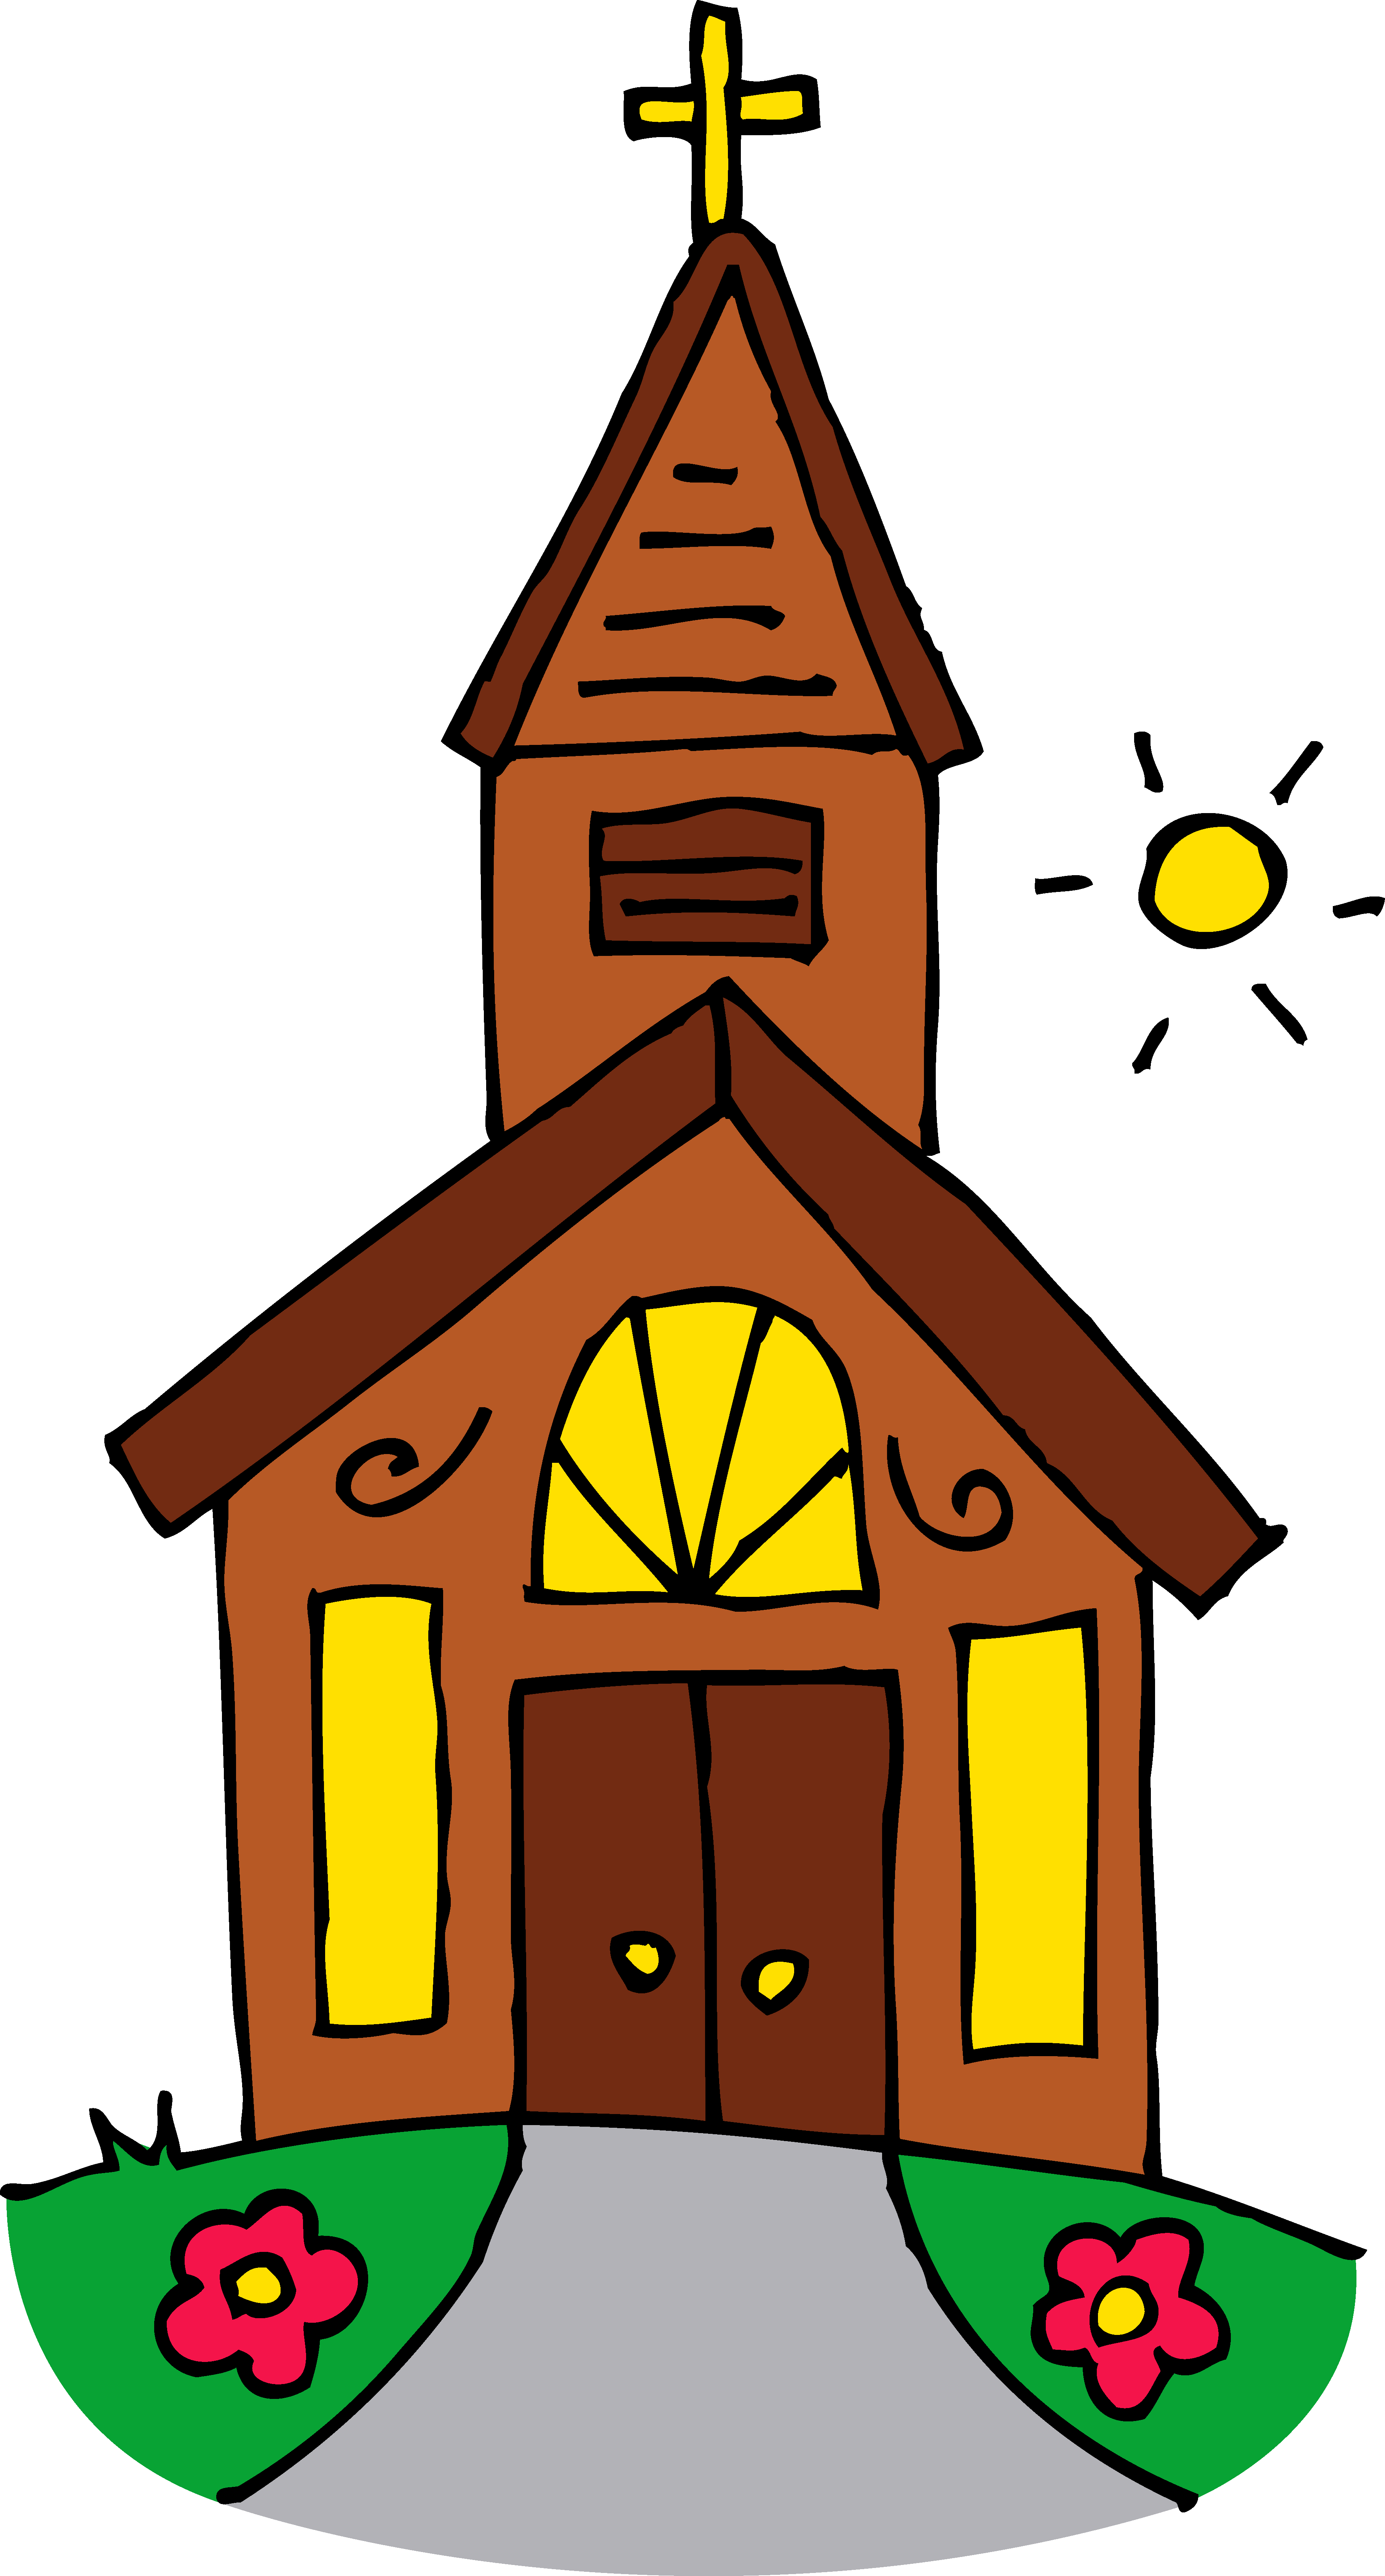 Church Clip Art - Blogsbeta - Free Church Clipart